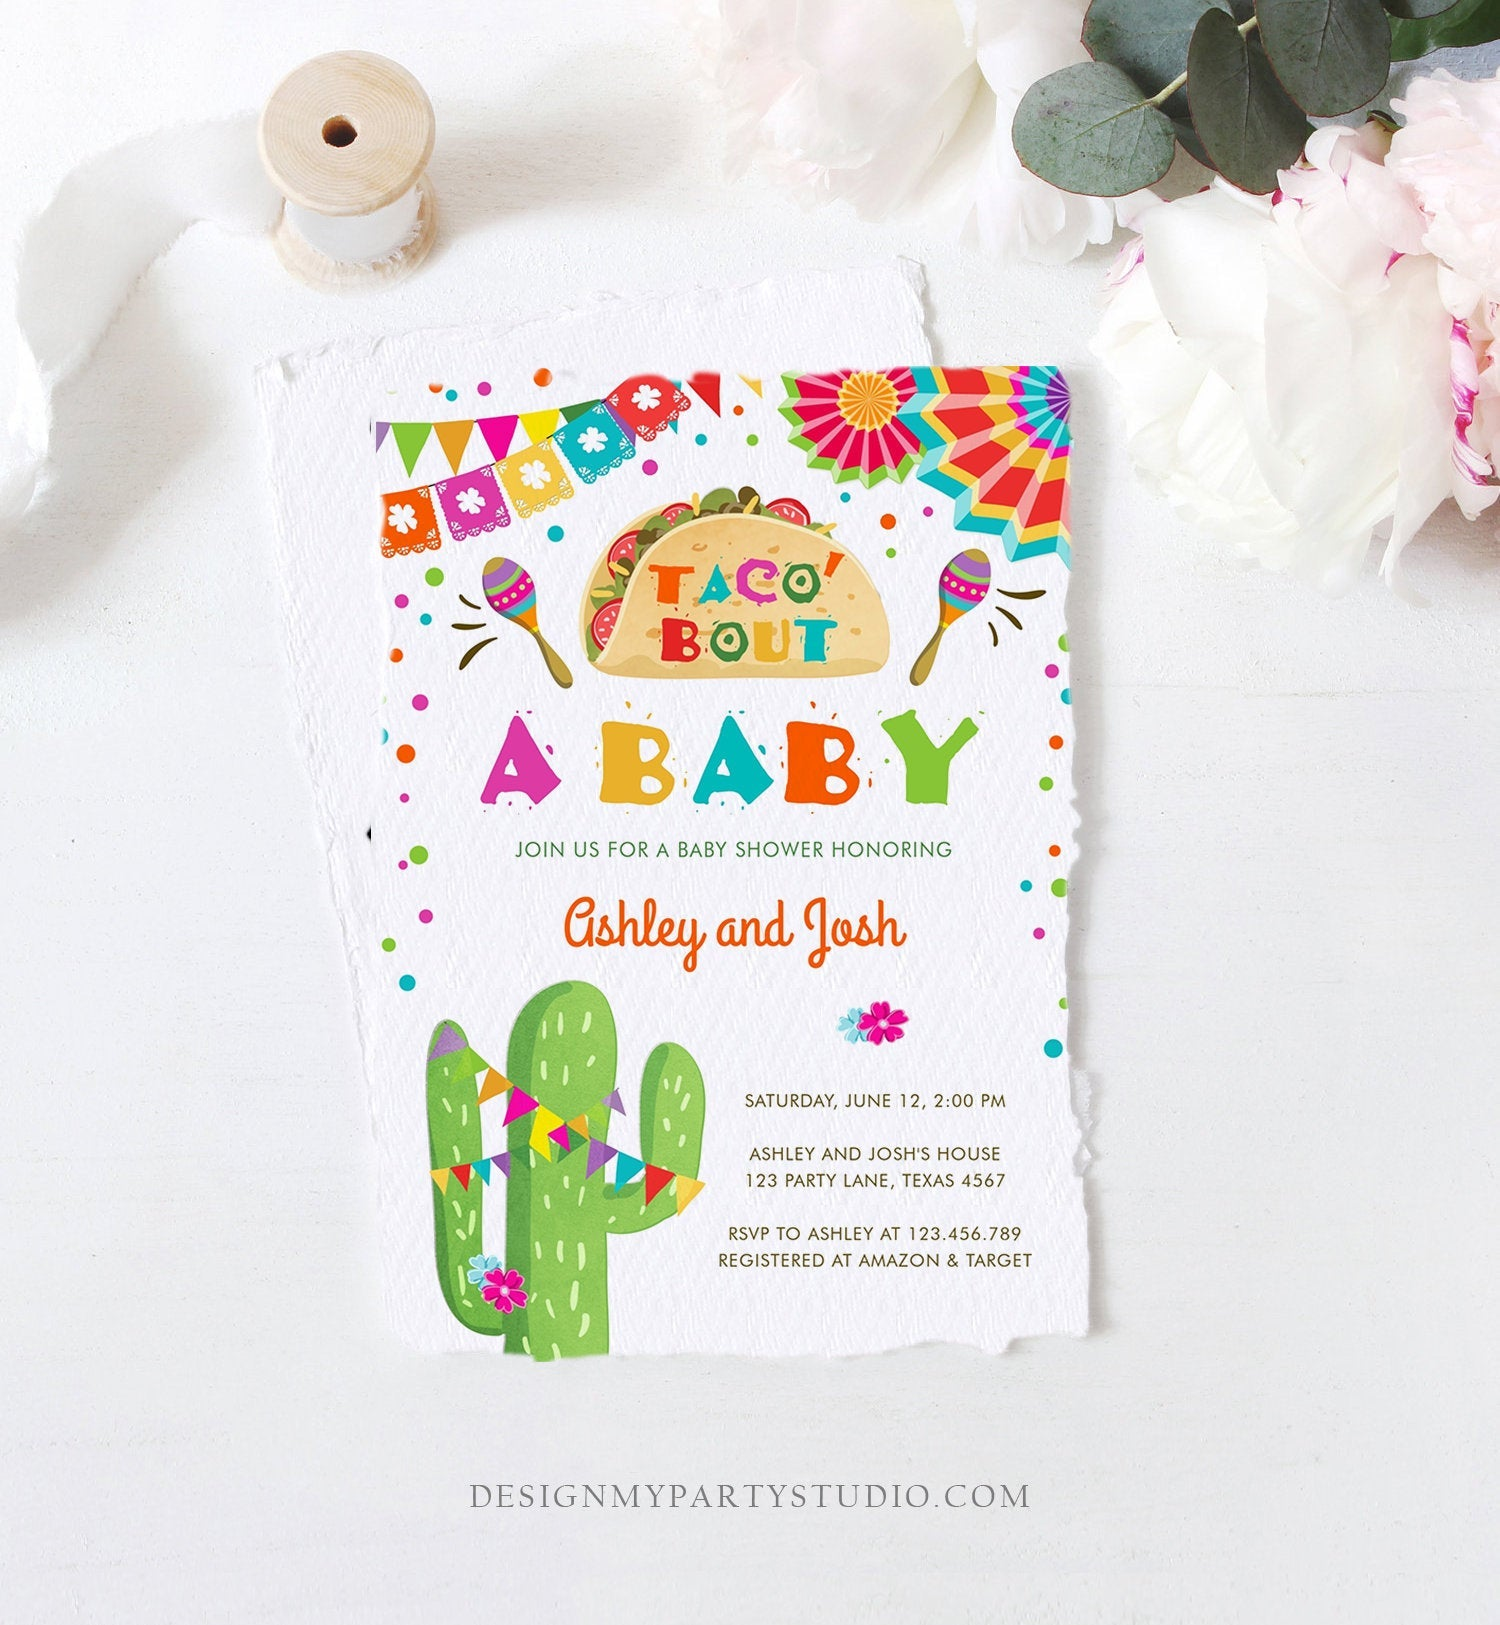 Editable Taco Bout A Baby Baby Shower Invitation Fiesta Cactus Mexican Couples Coed Shower Instant Download Printable Corjl Template 0045